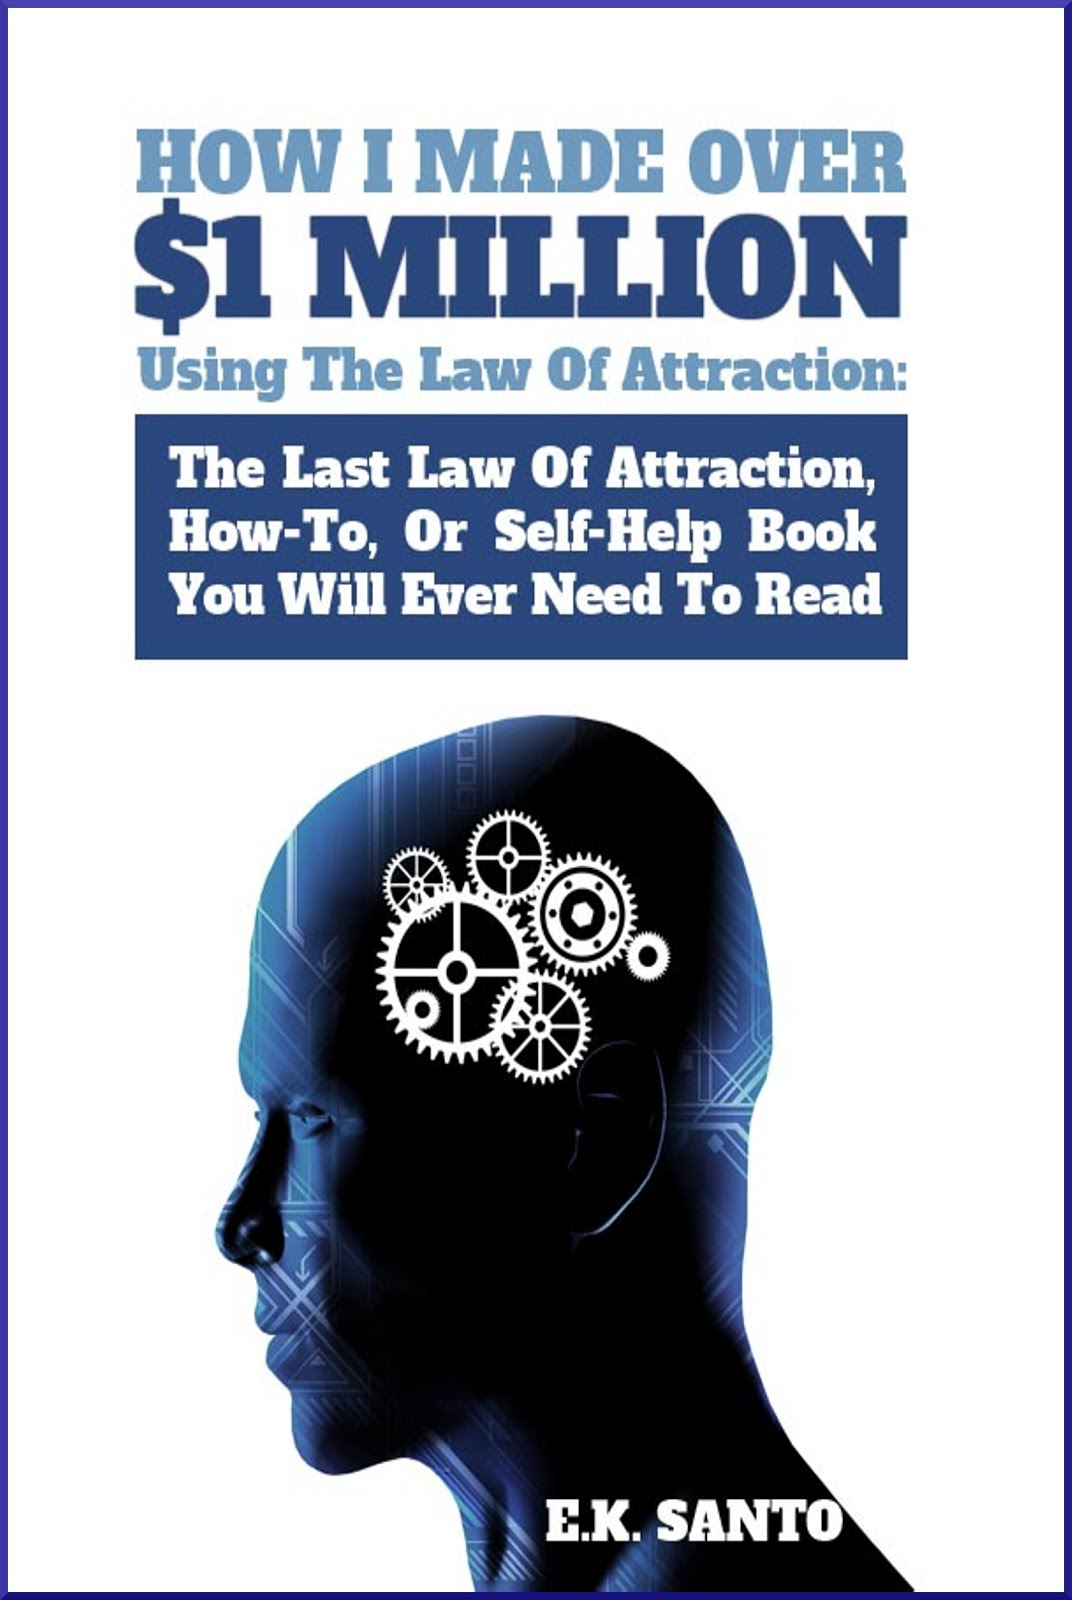 How I Made a Million Dollars using the Law of Attraction